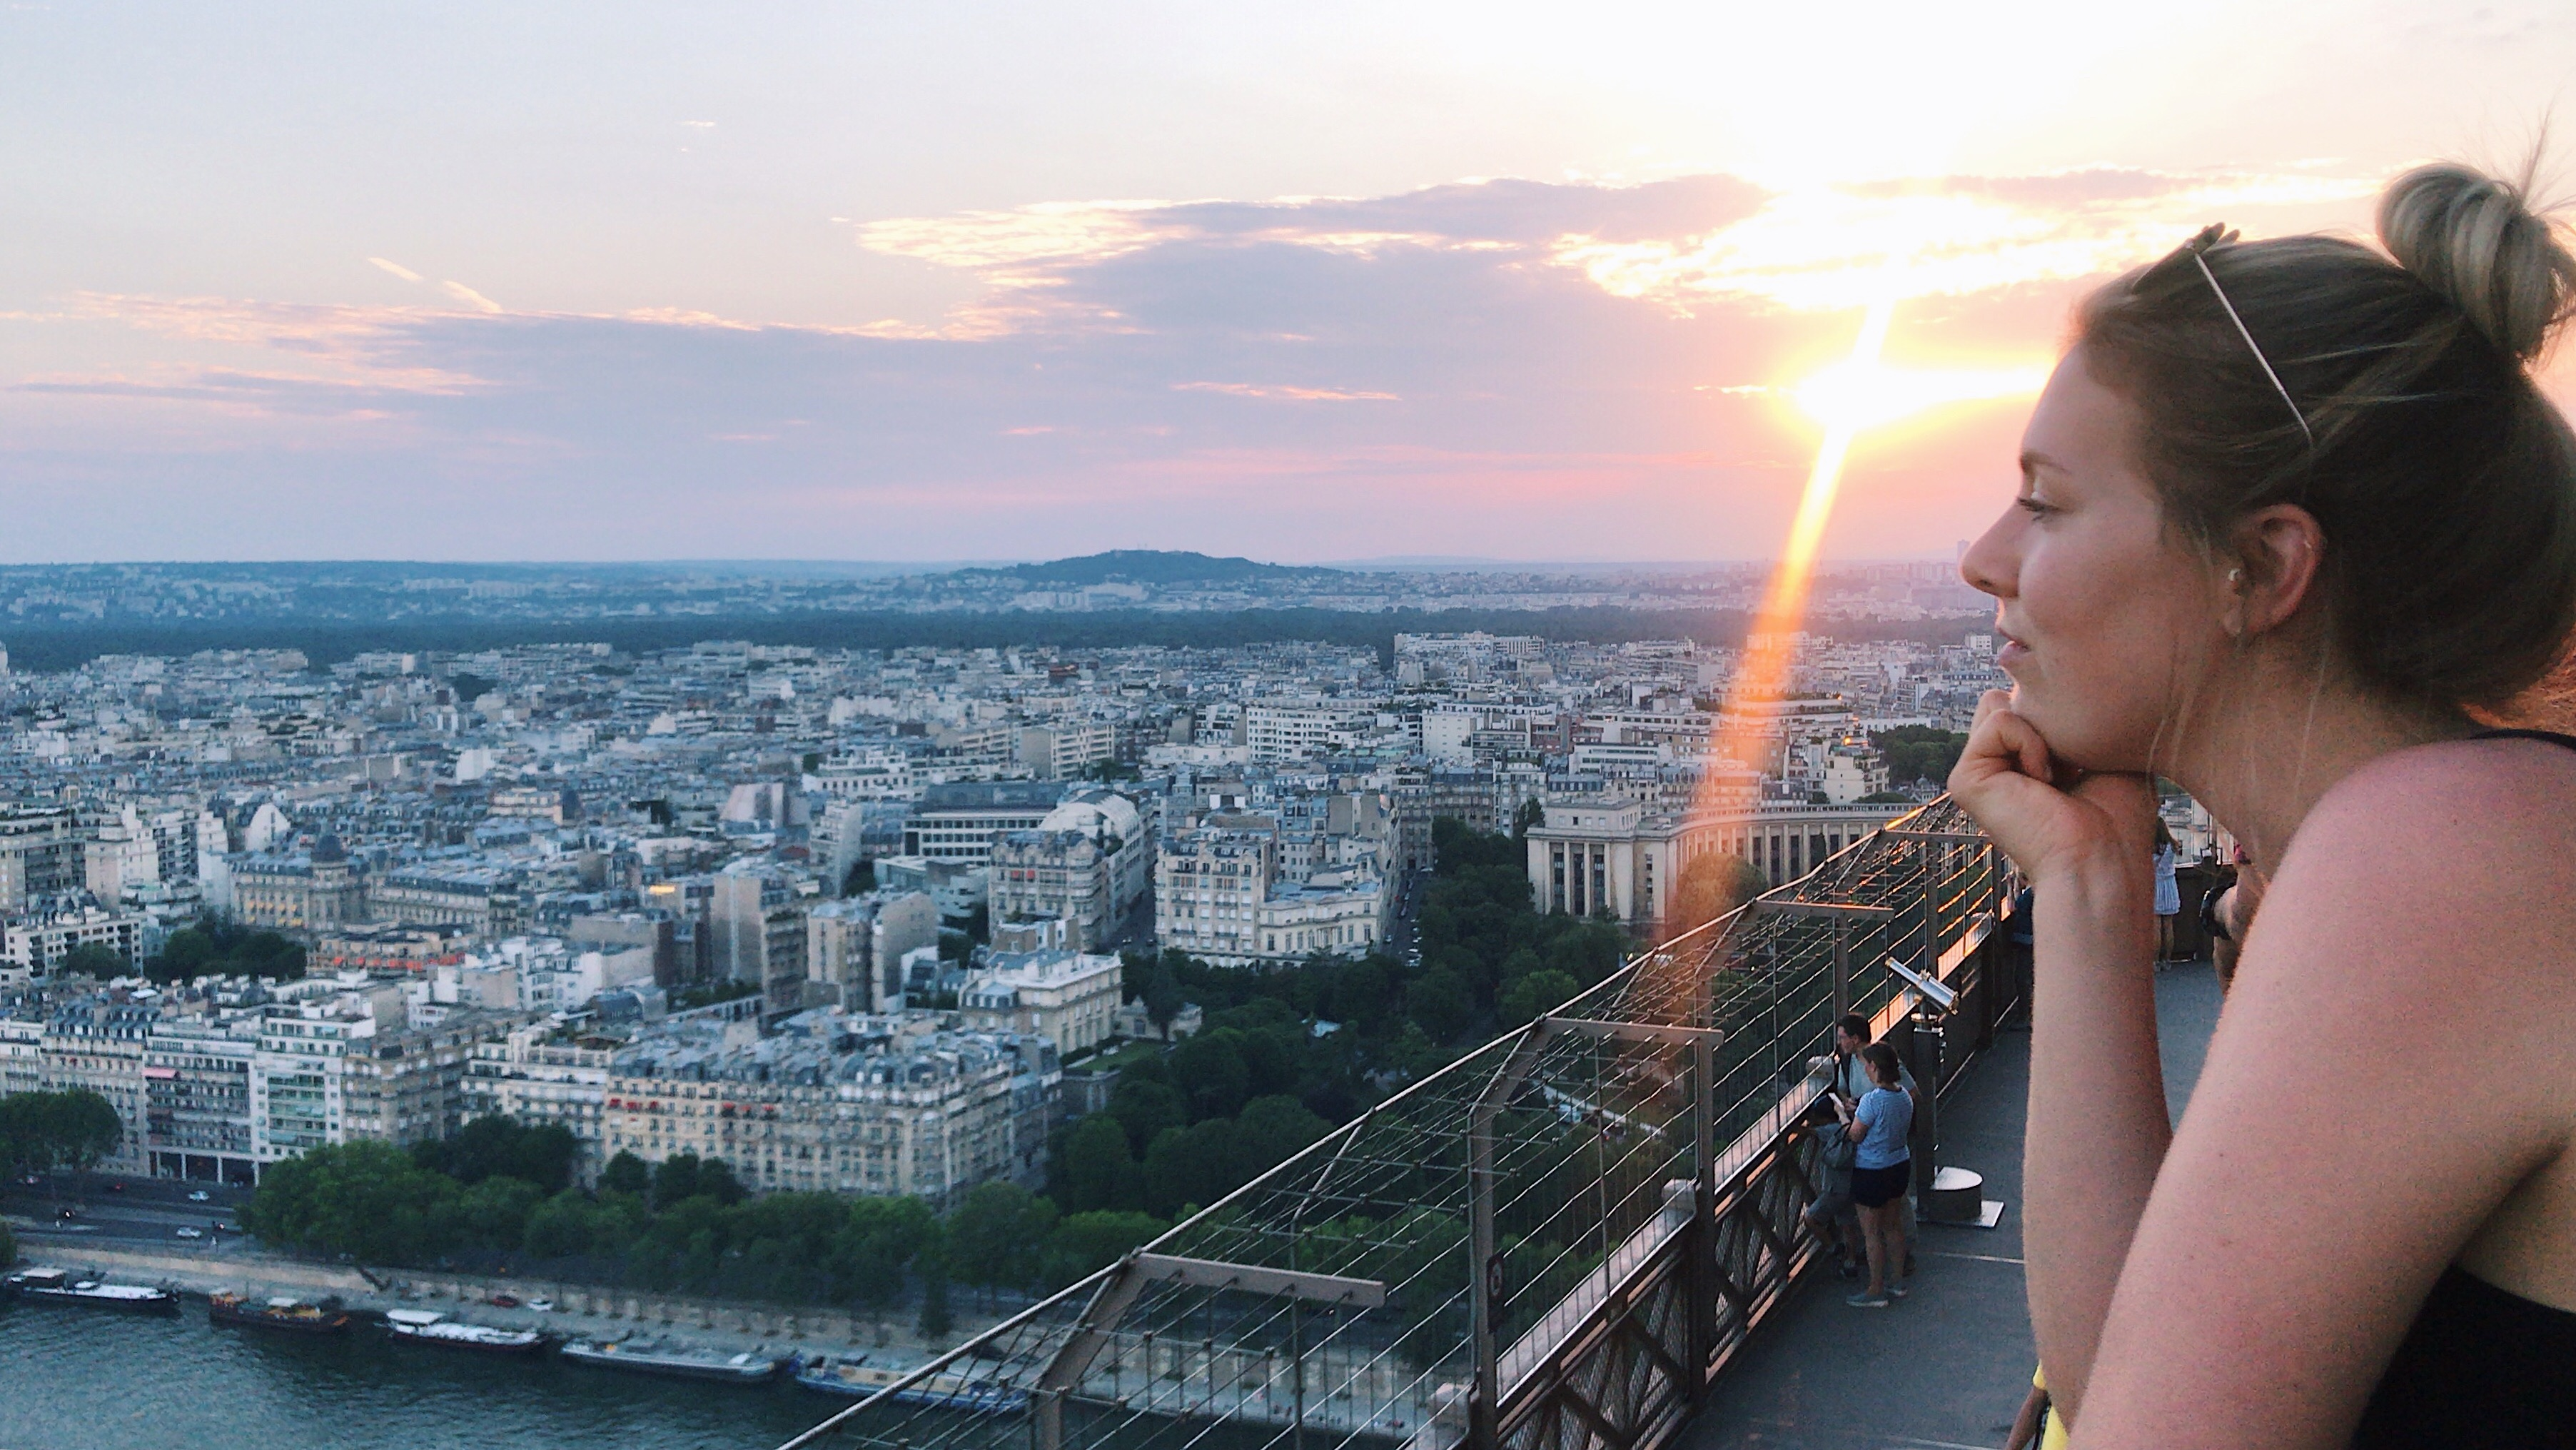 I'm an American Who Wants to Teach English in France - What Are My Options?